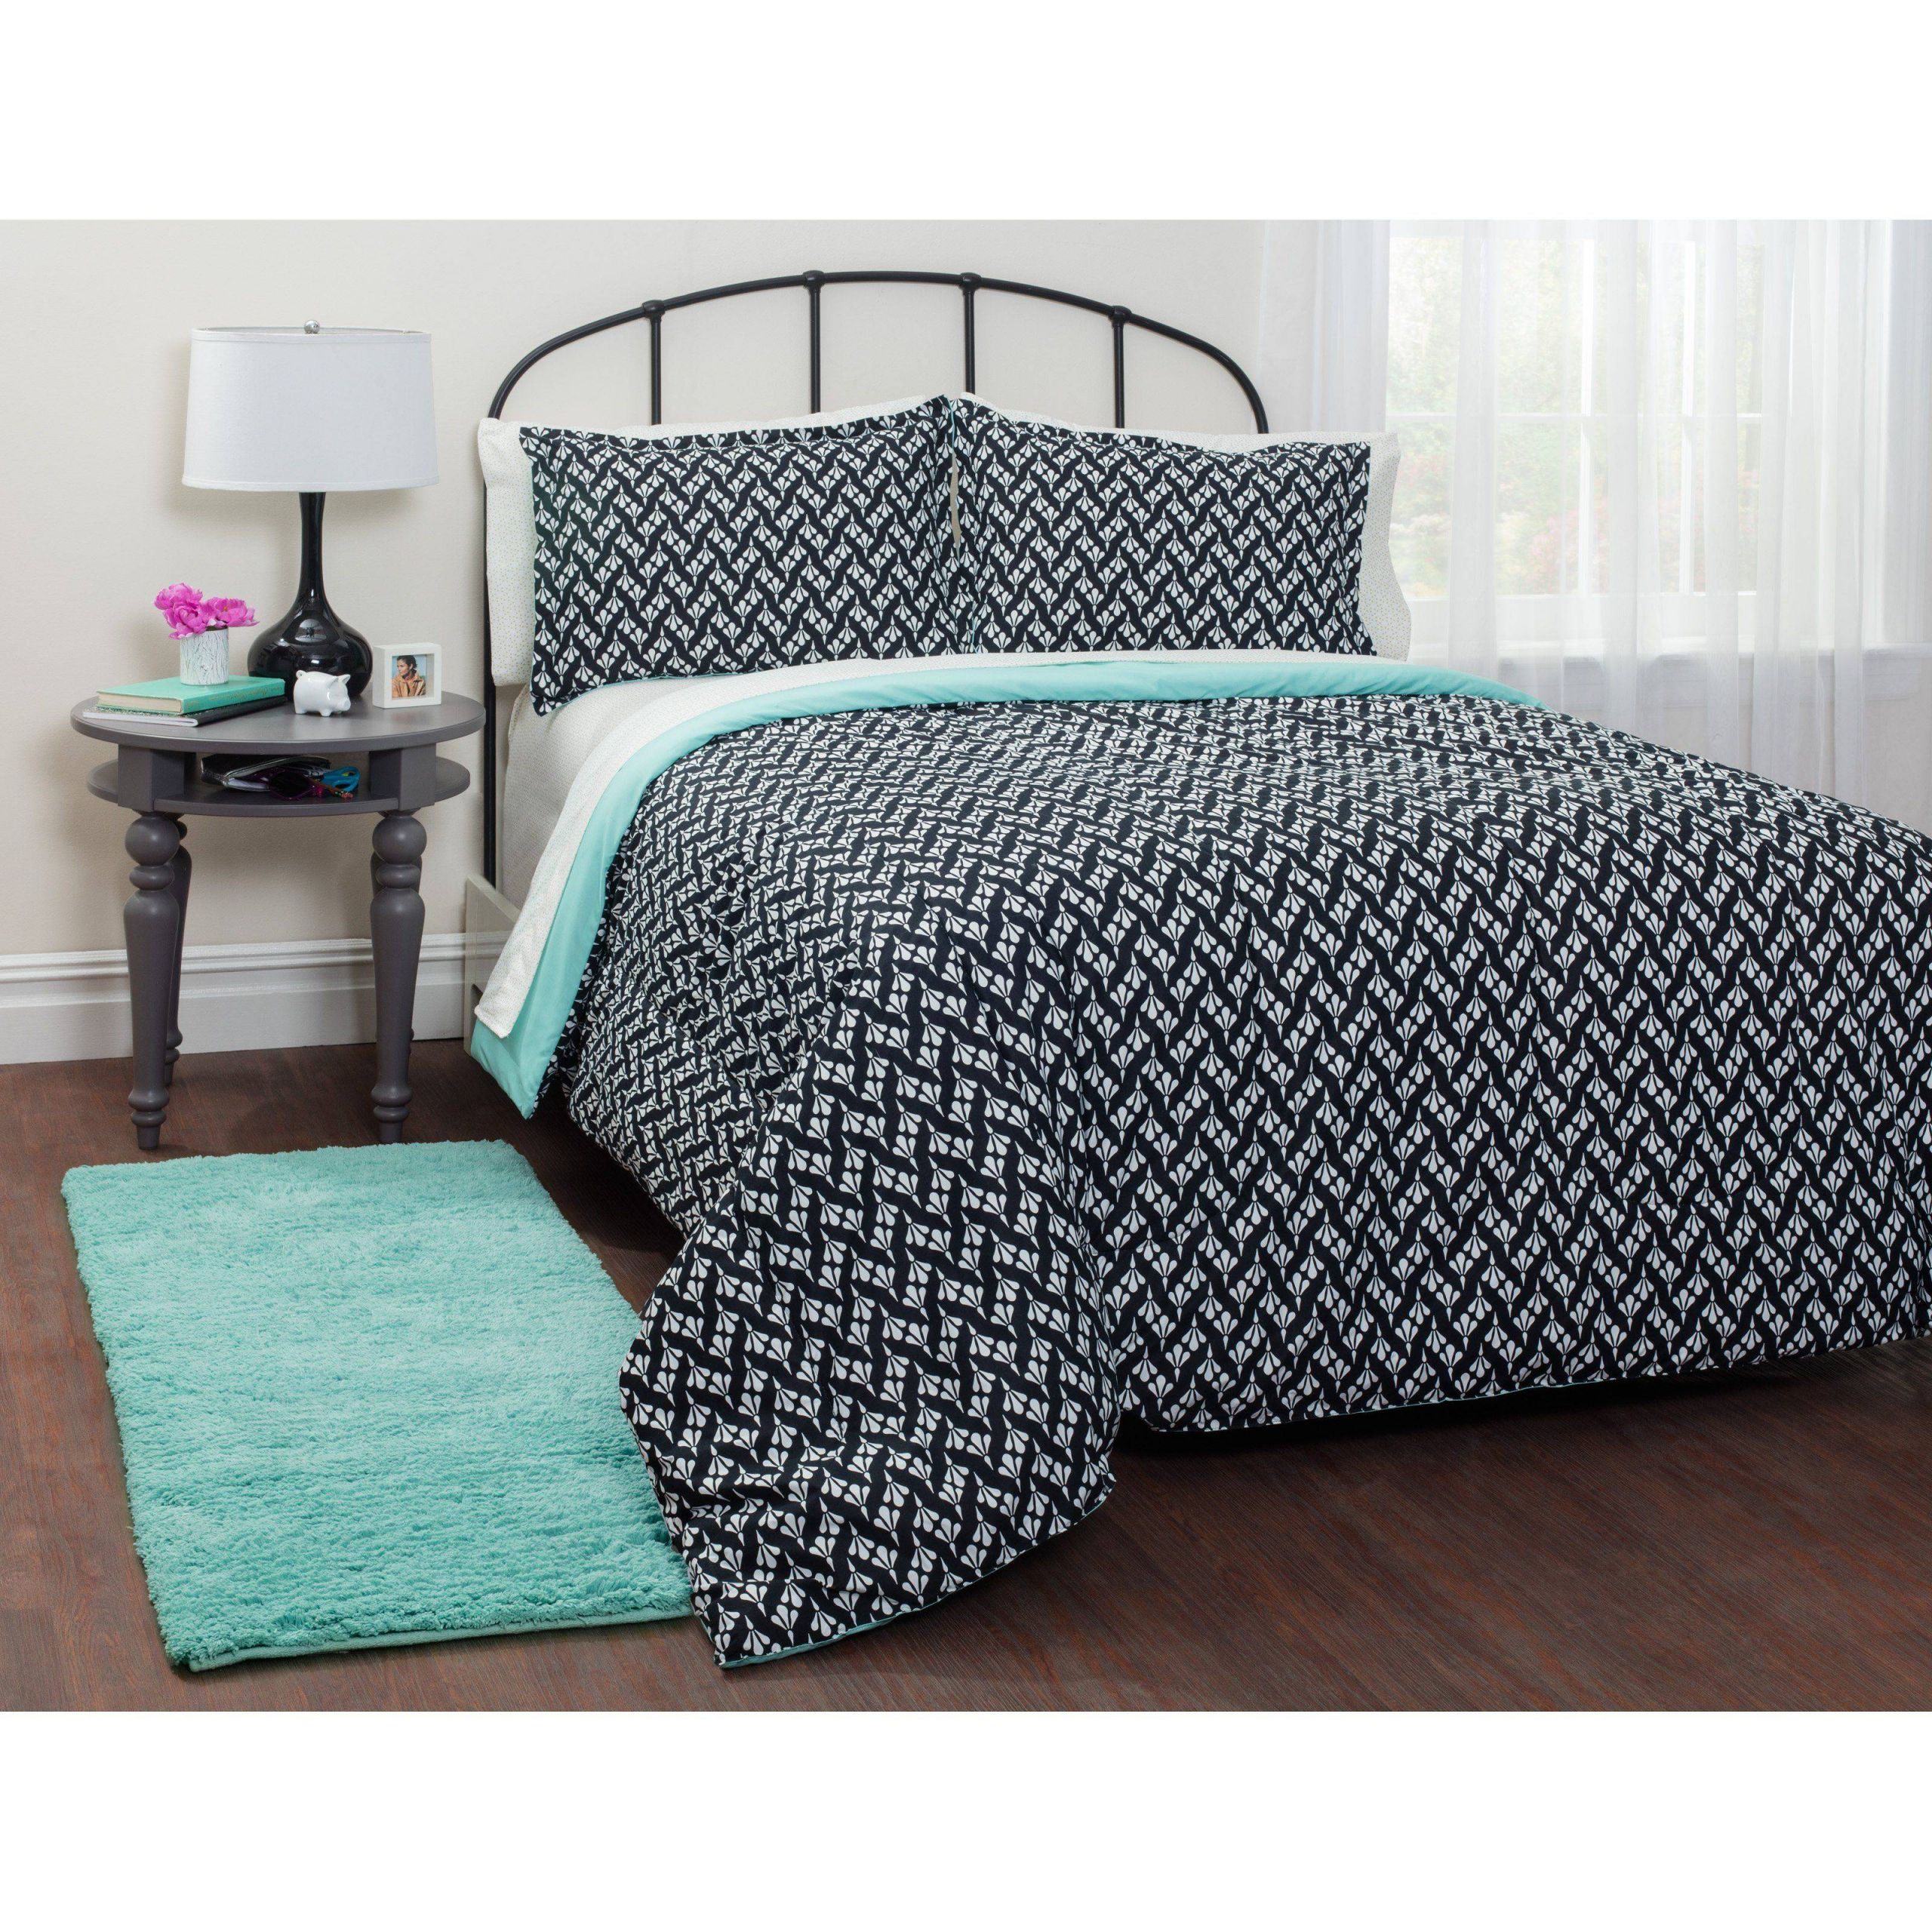 Bedding In A Bag Luxury Mint Motif Bed In A Bag by Your Zone Wk In 2019